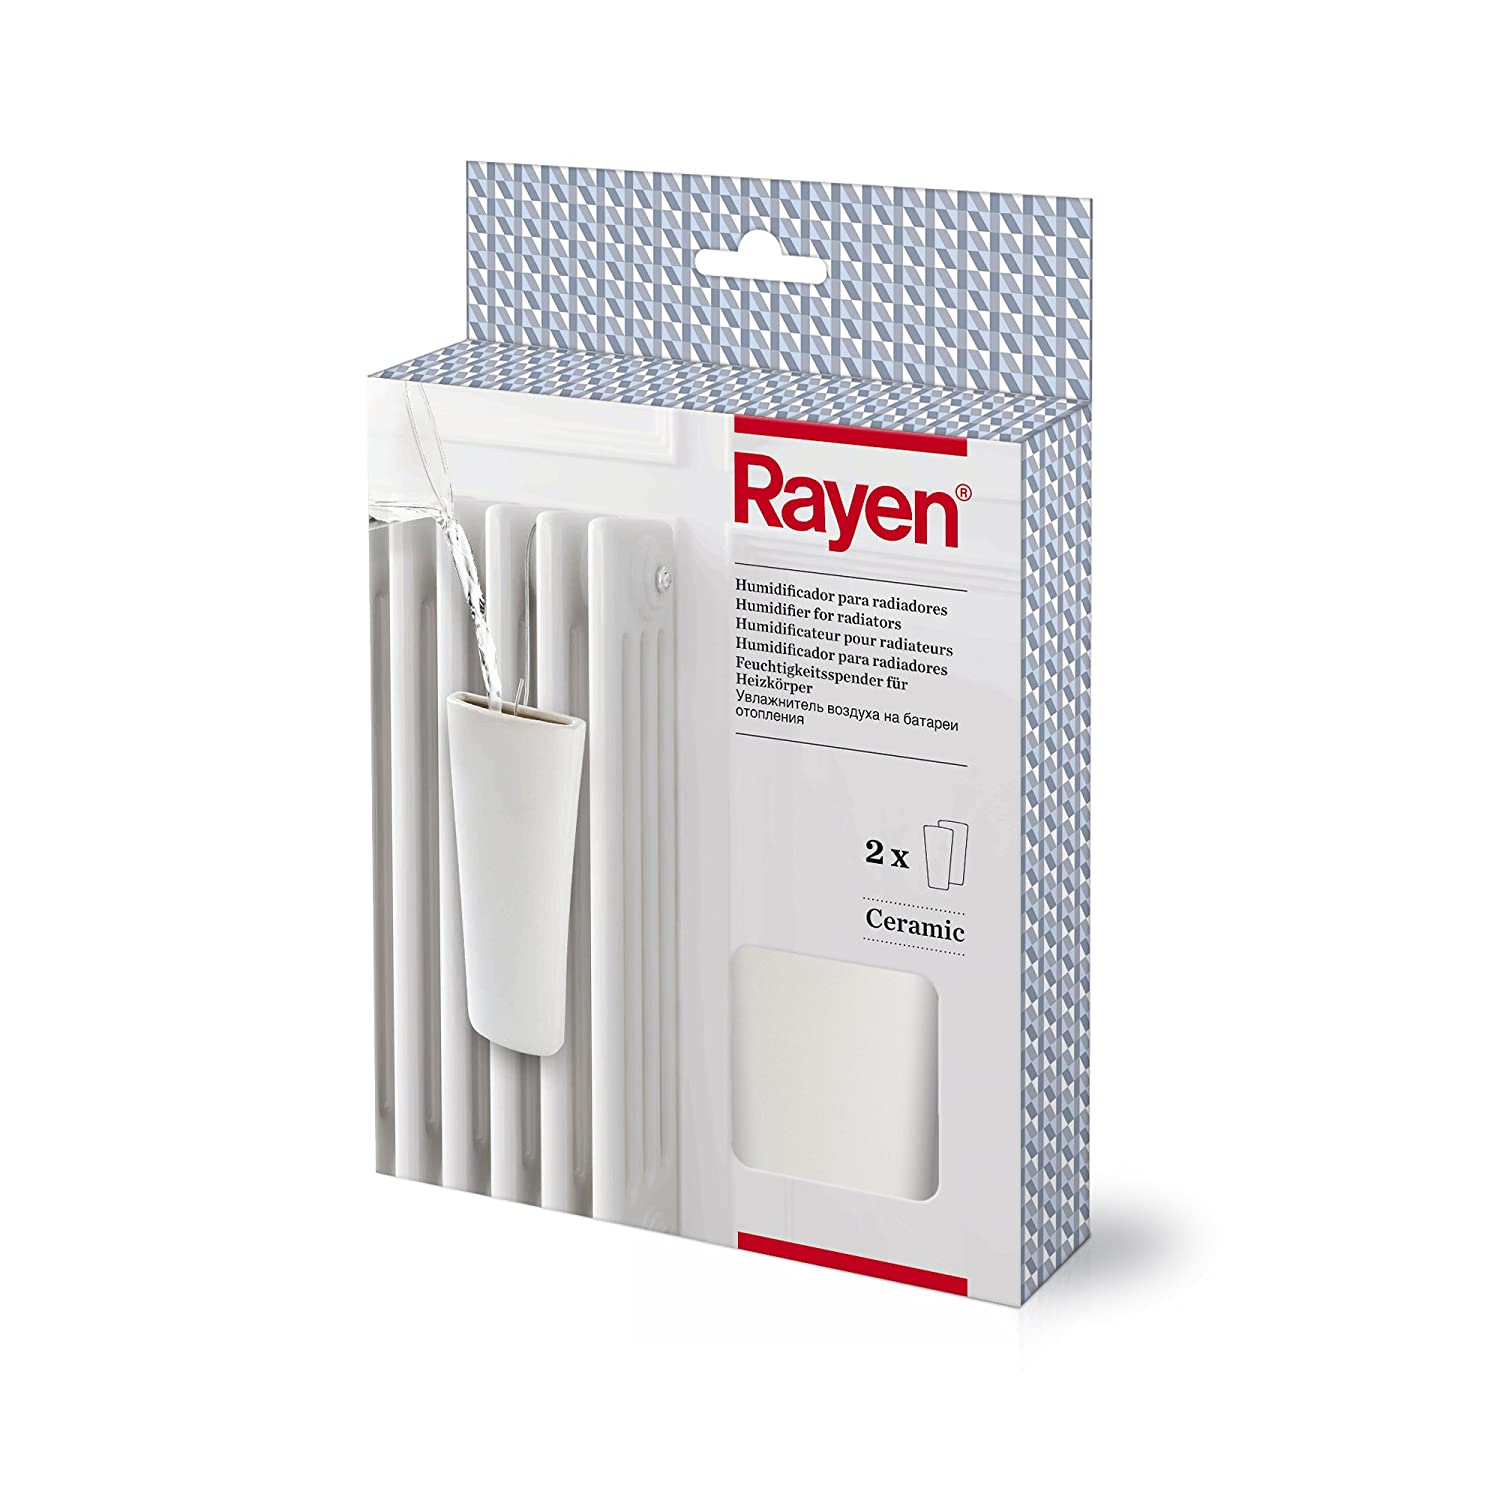 Rayen 0042.01 - Pack de dos humidificadores para radiadores, color blanco: Amazon.es: Hogar